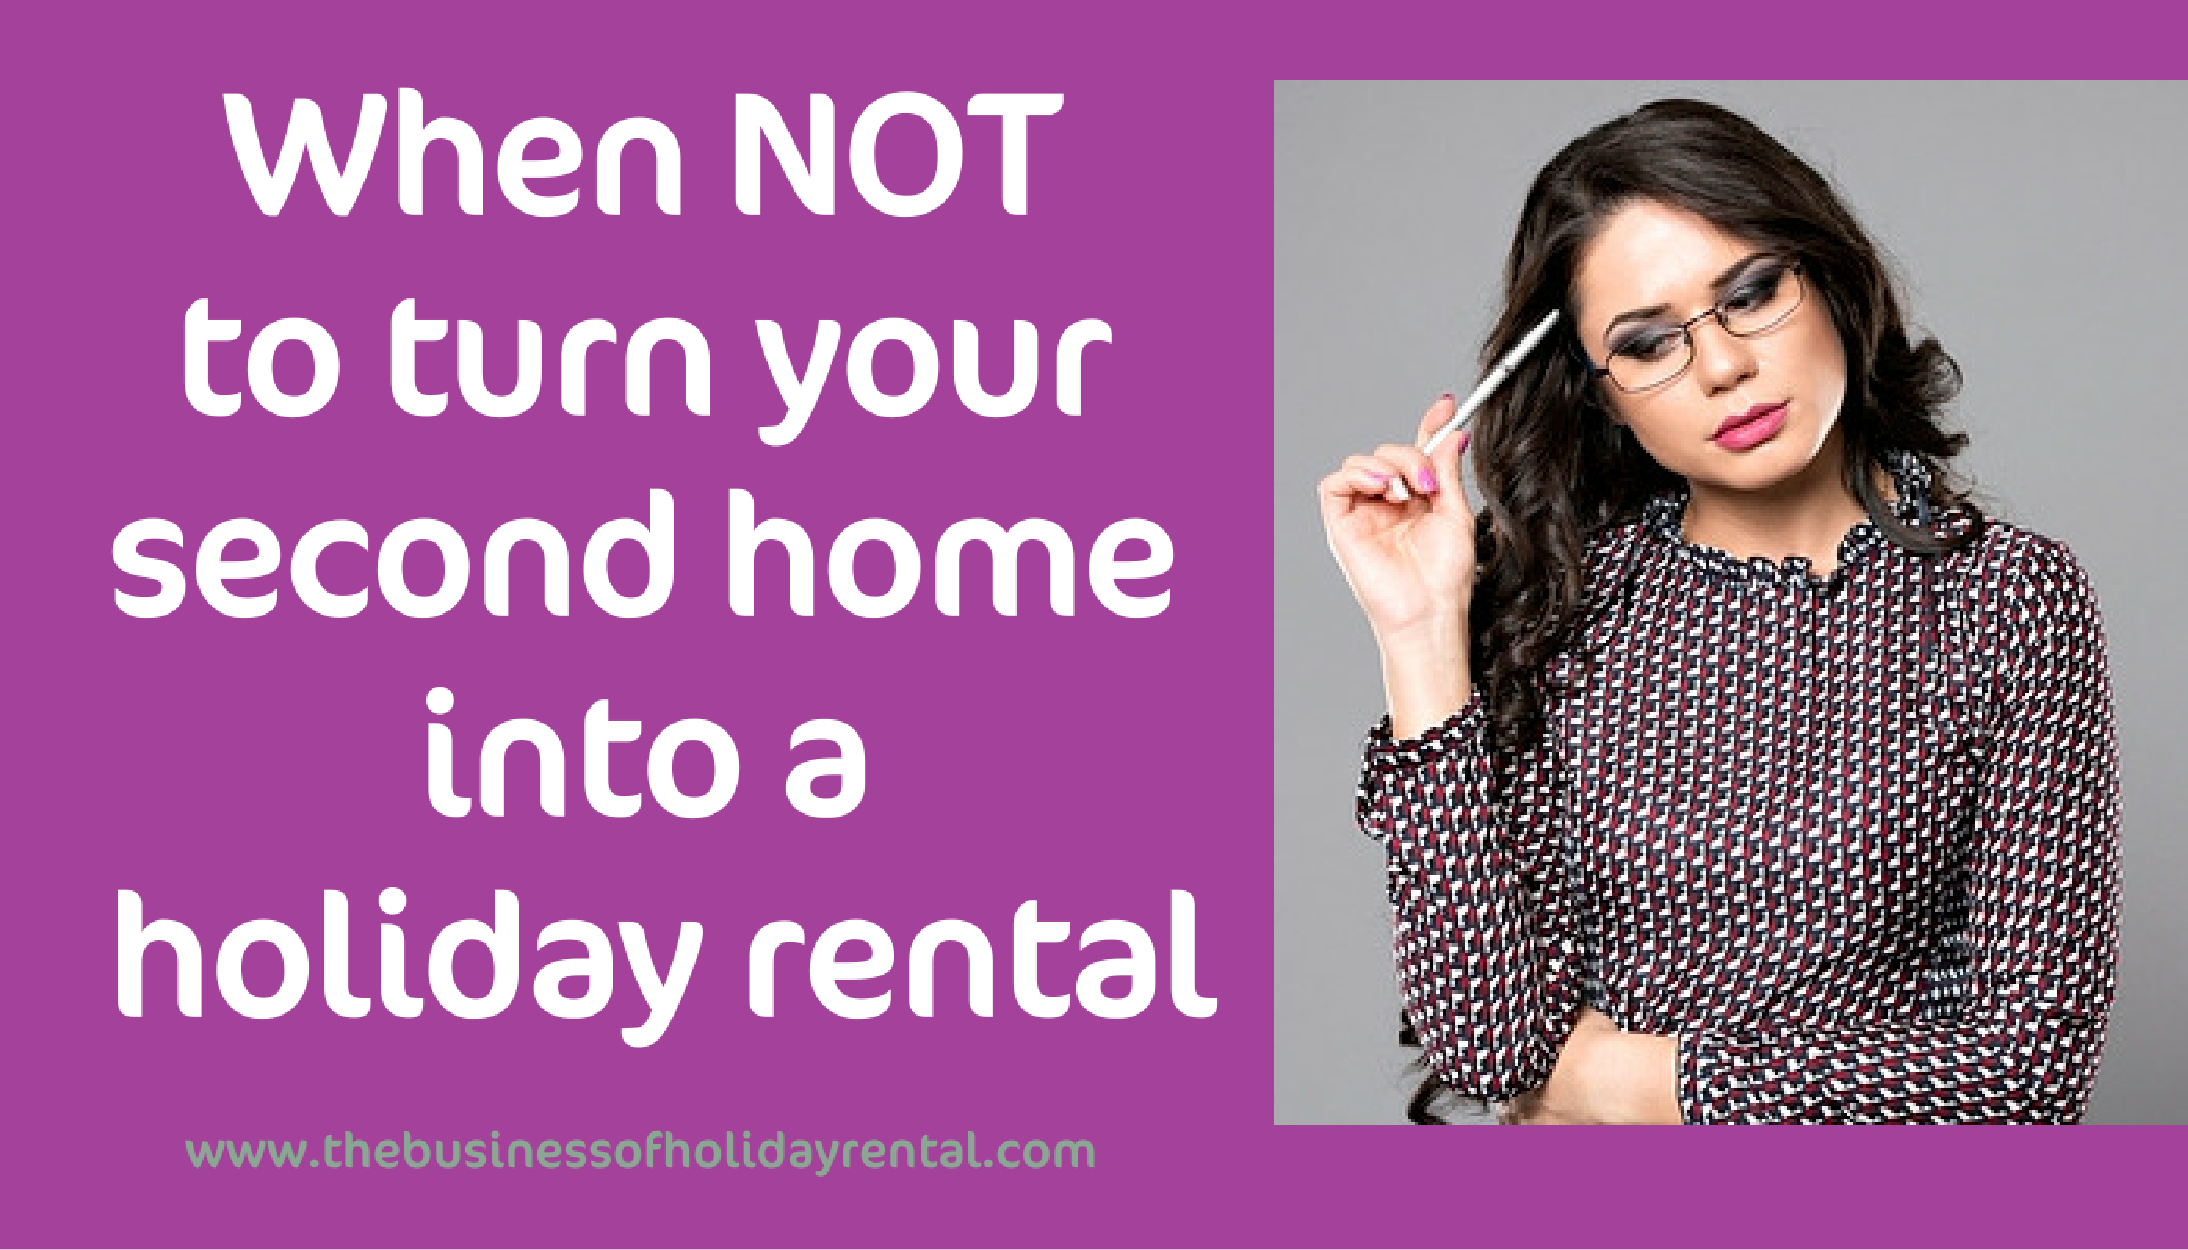 When Not To Turn Your Second Home Into A Holiday Rental